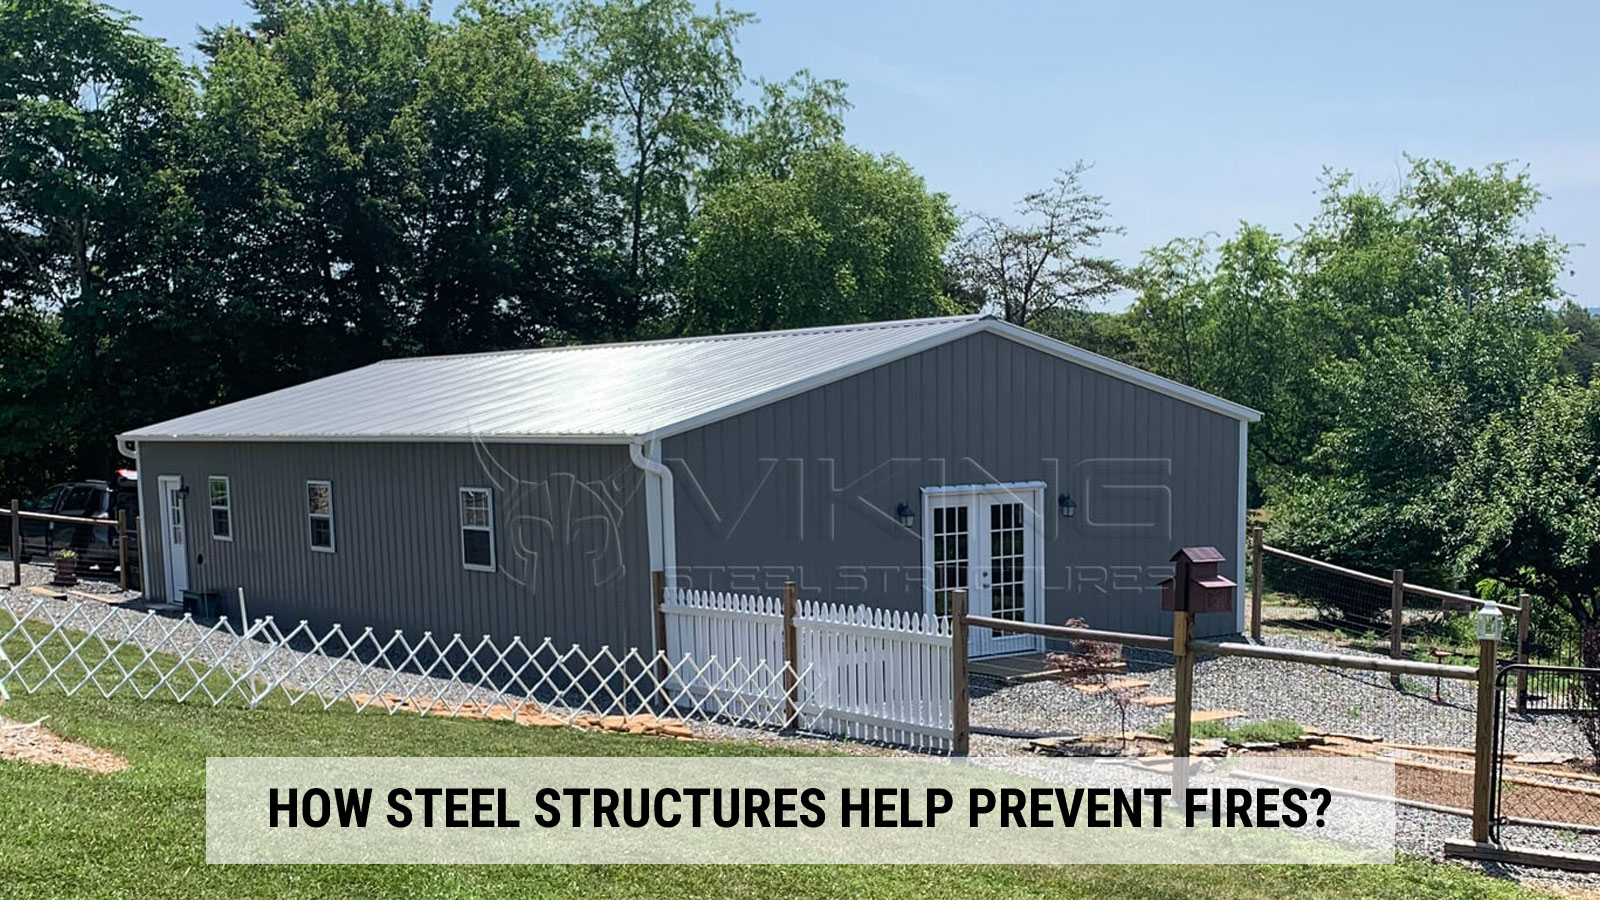 How Steel Structures Help Prevent Fires